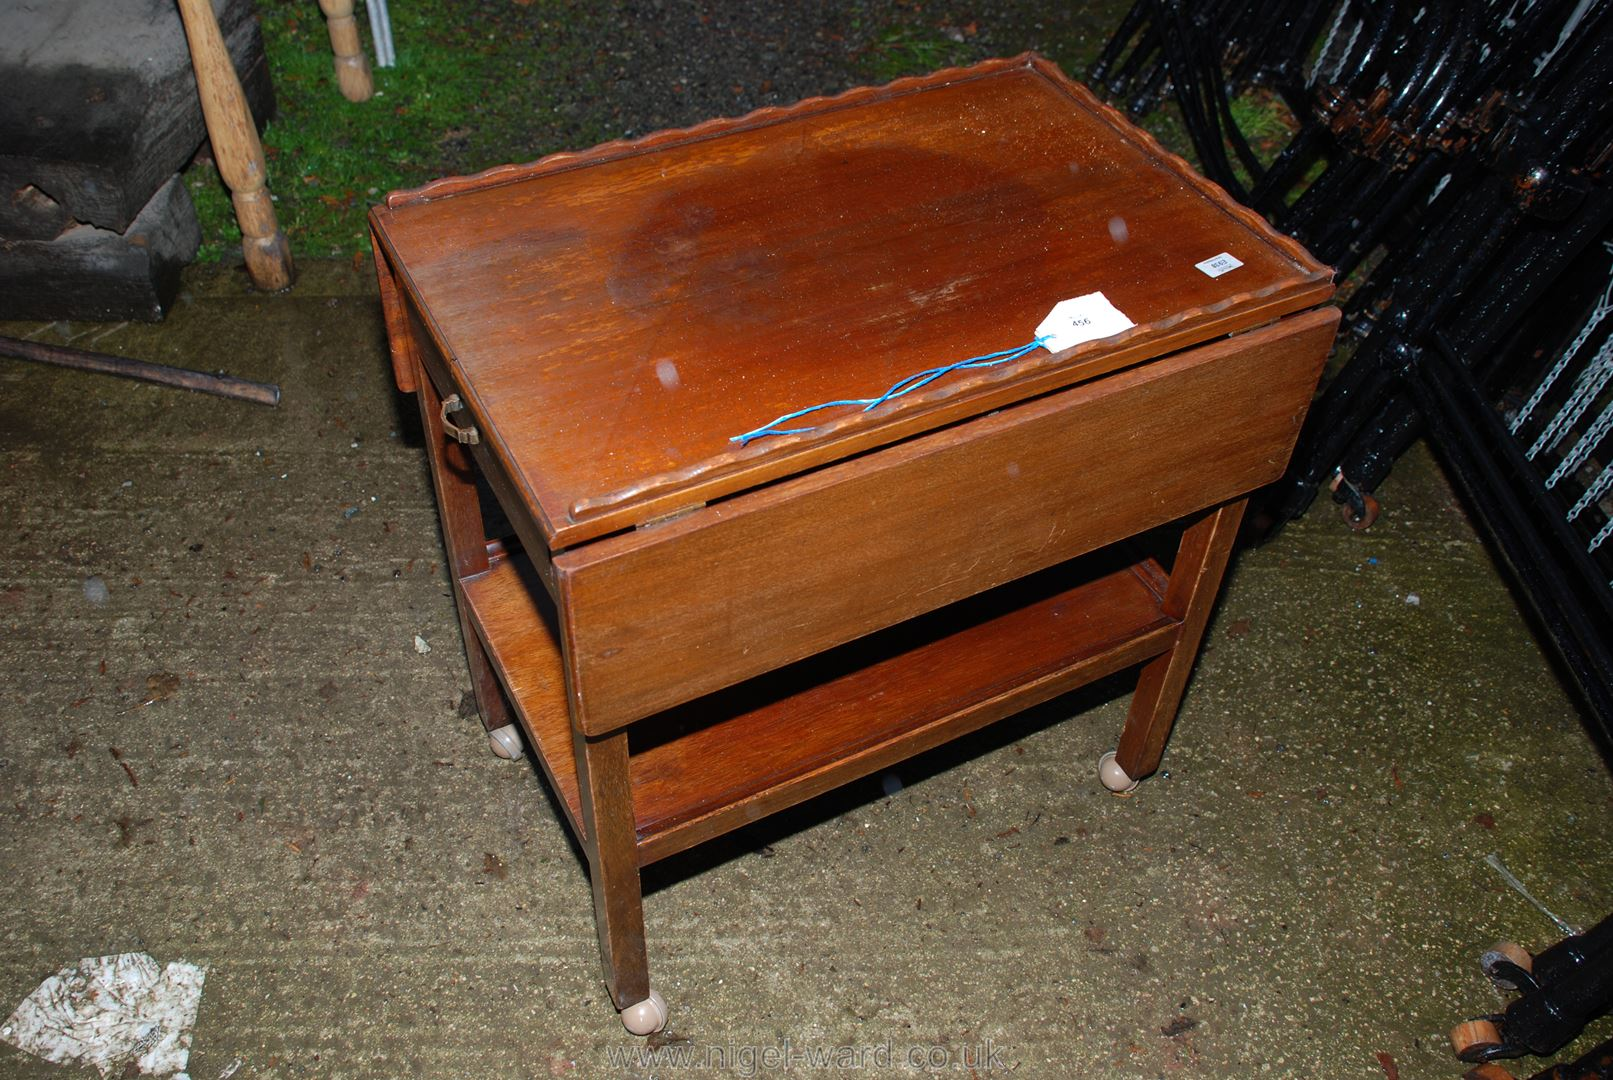 A drop-leaf tea-table with drawer and lower shelf.